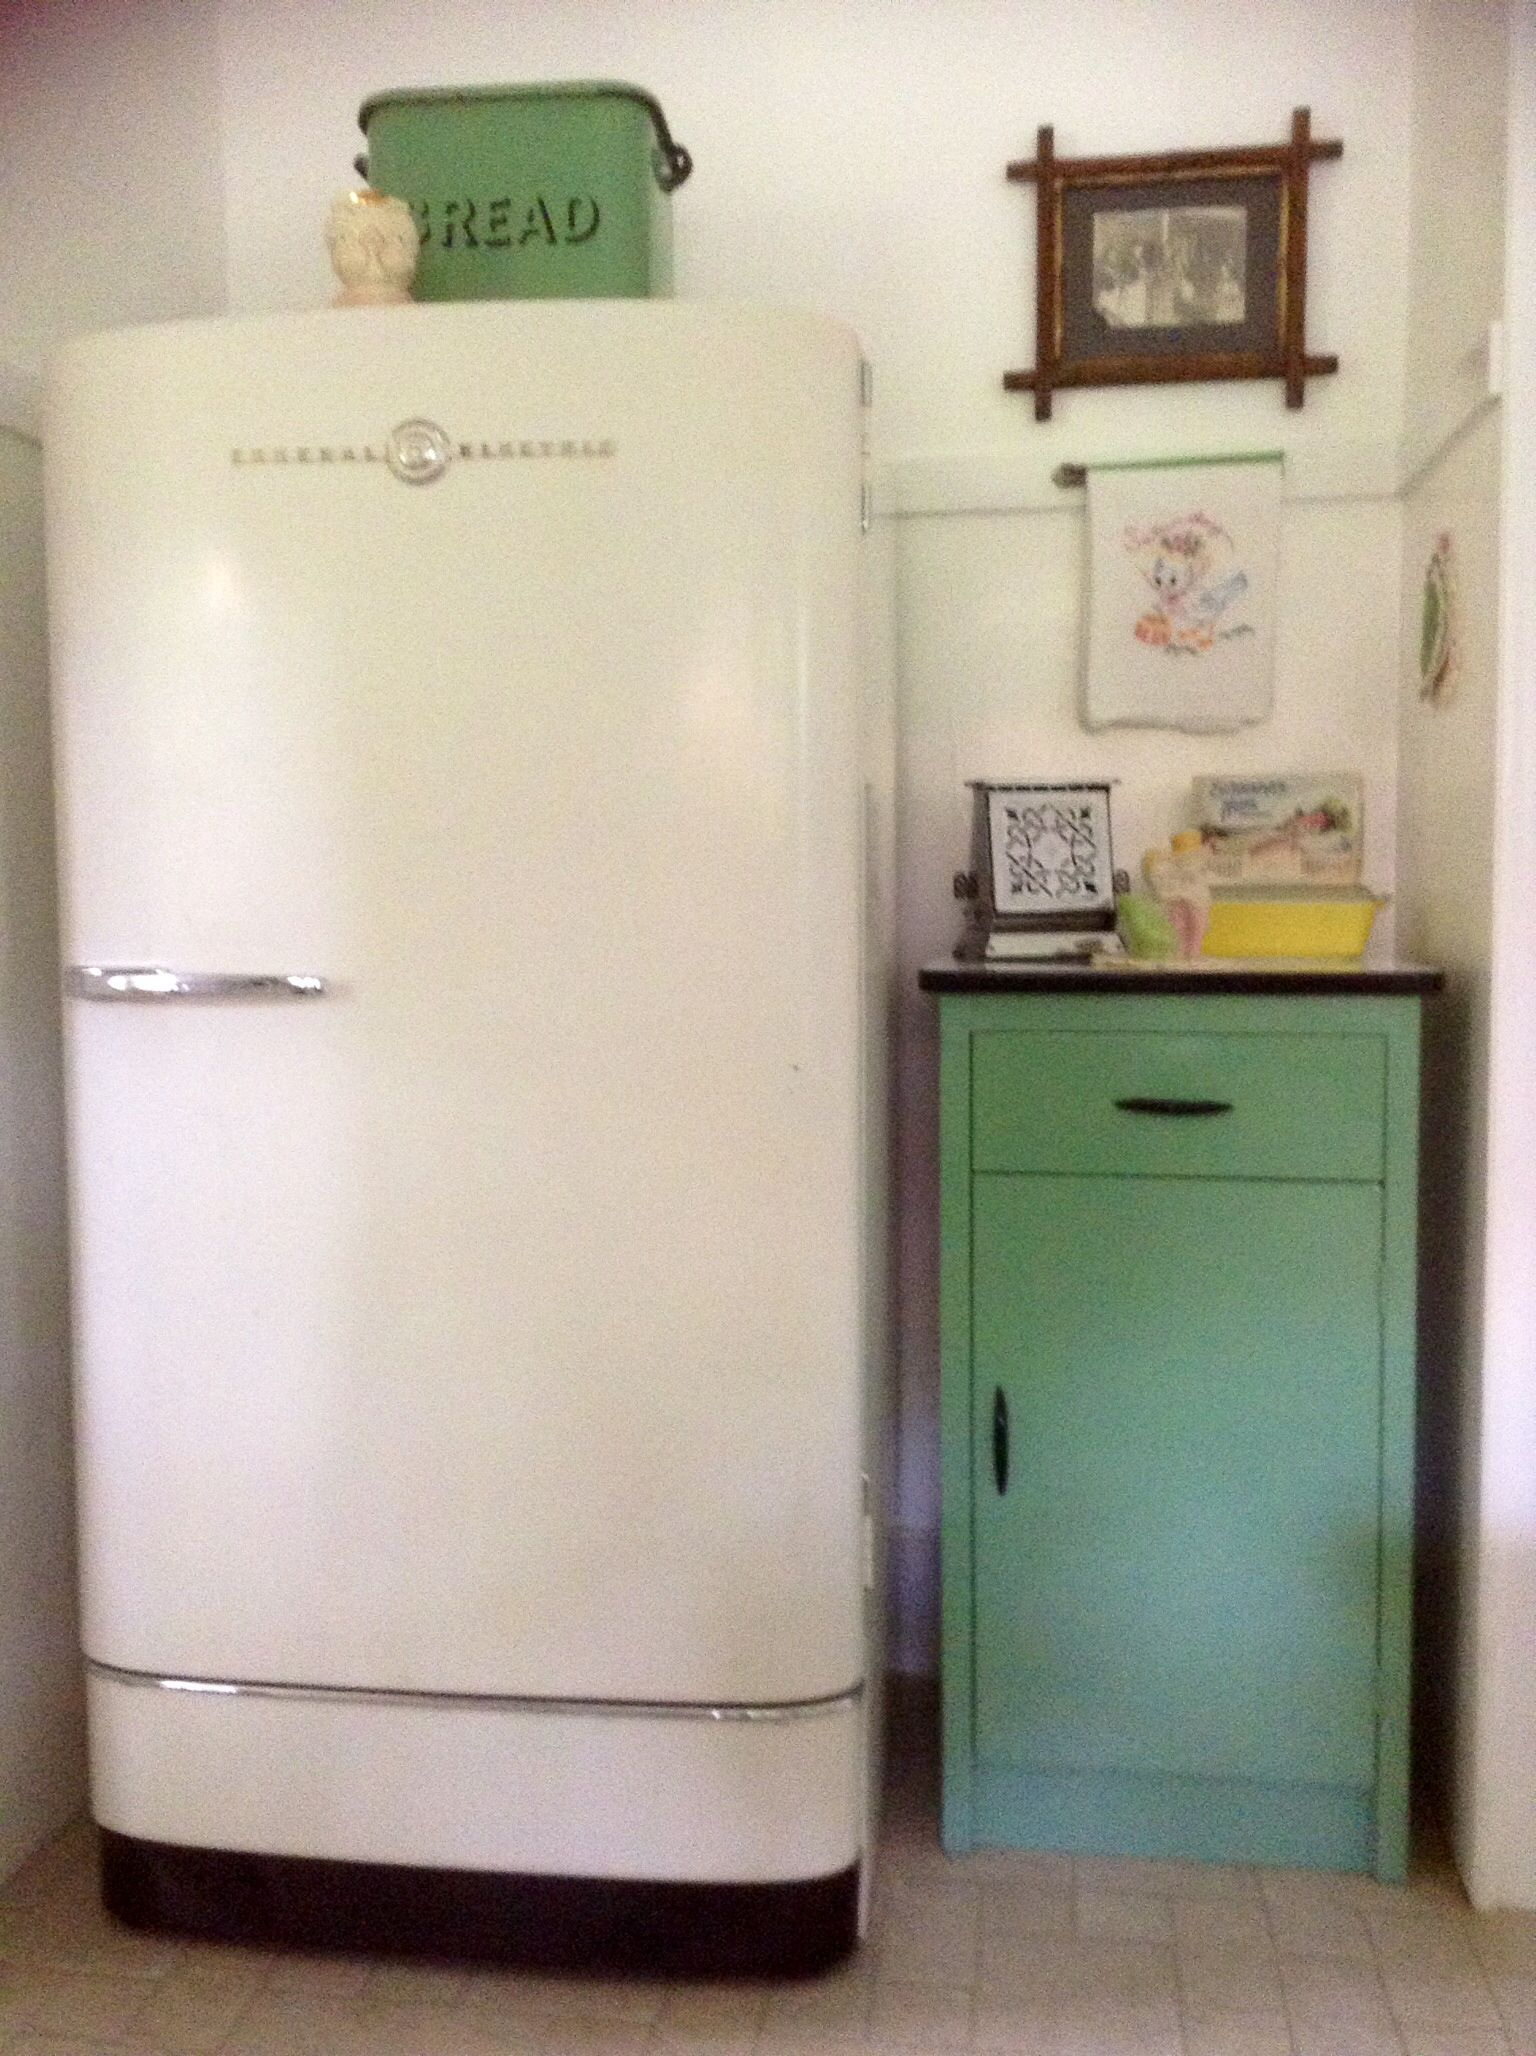 My vintage 1947 GE (General Electric) refrigerator